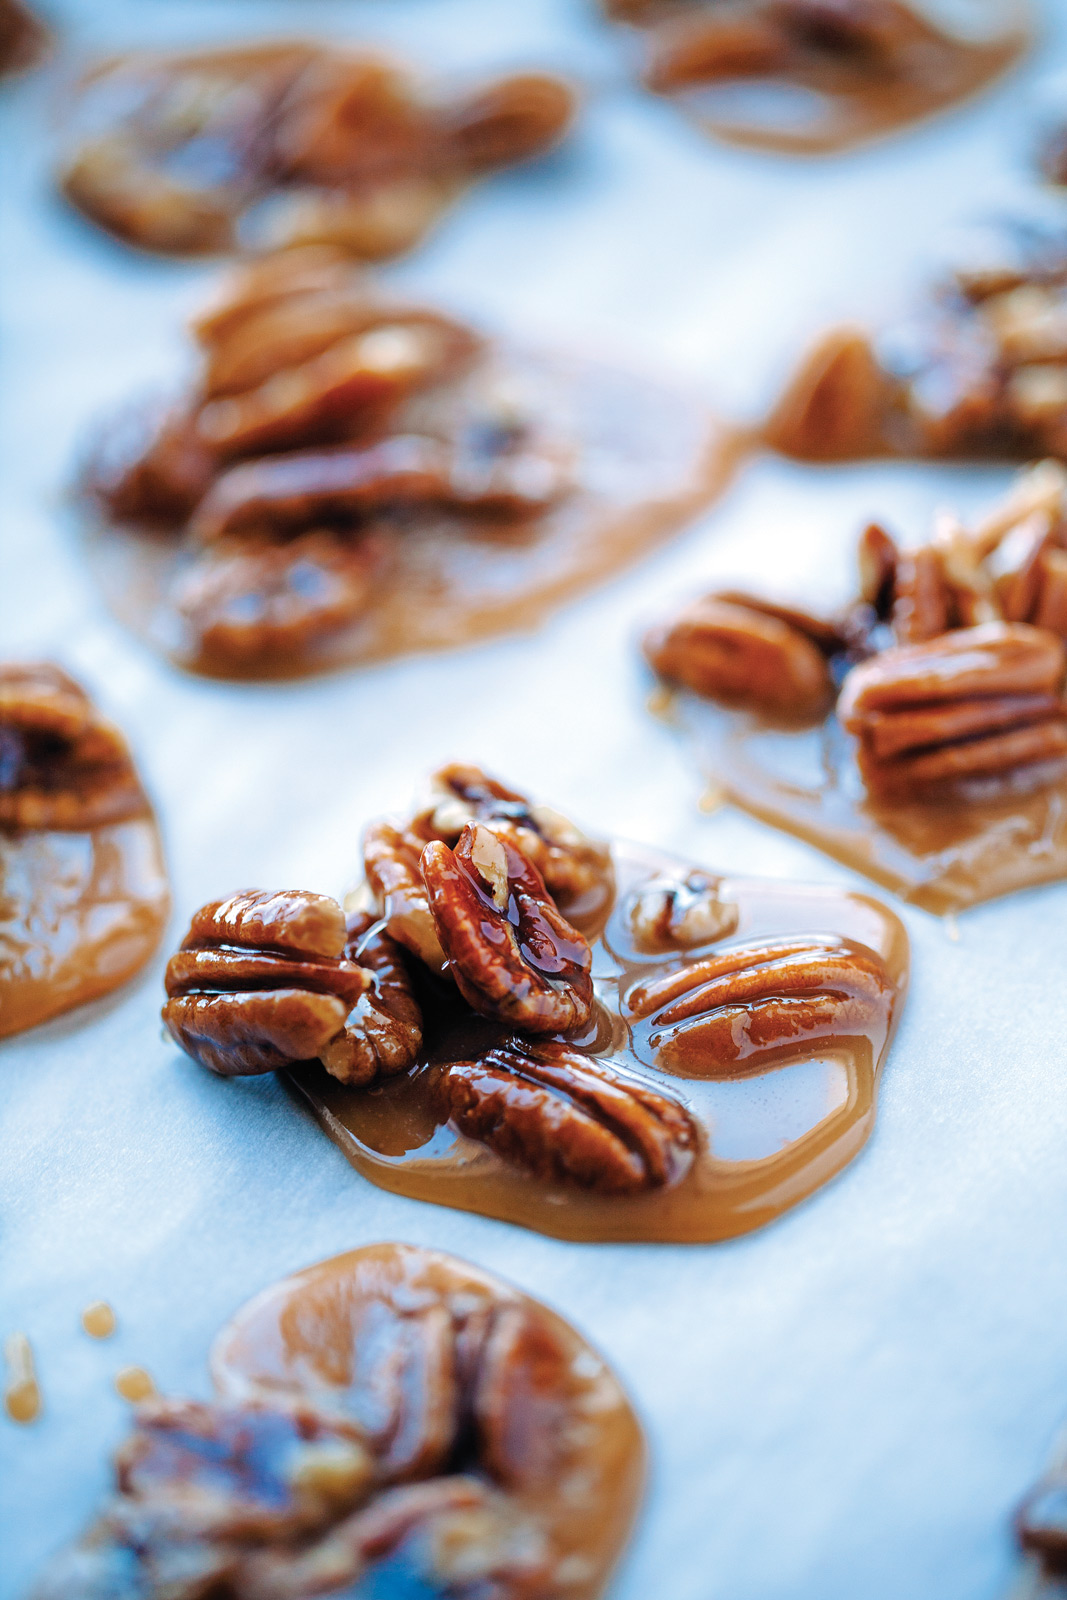 Cajun Pralines, from Alain Bossé's The Acadian Kitchen. Photo by Perry Jackson.